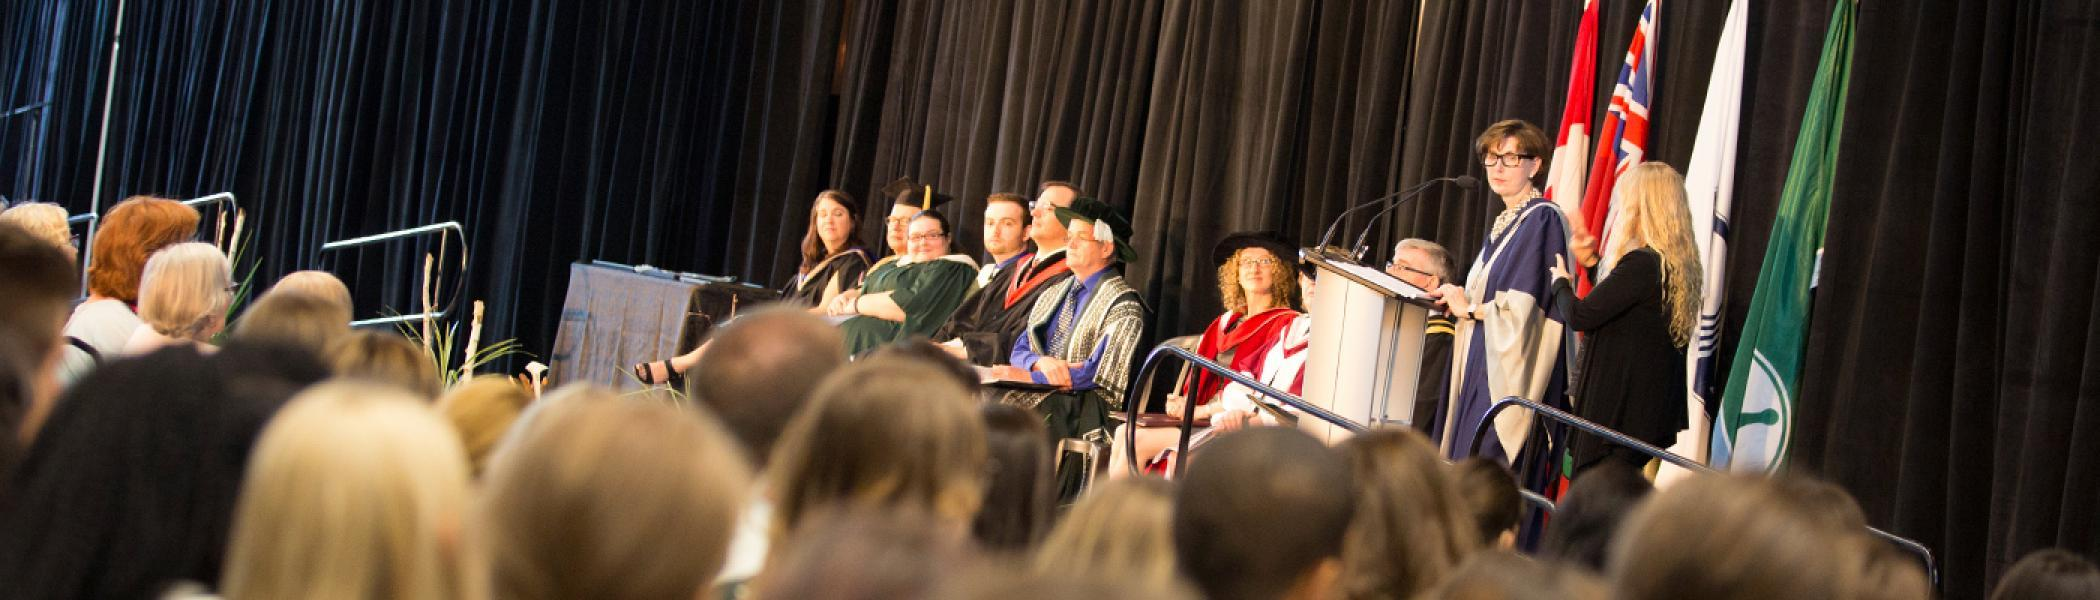 Kathleen Taylor standing at the convocation podium in Durham speaking in the microphone to the graduates sitting in front of her